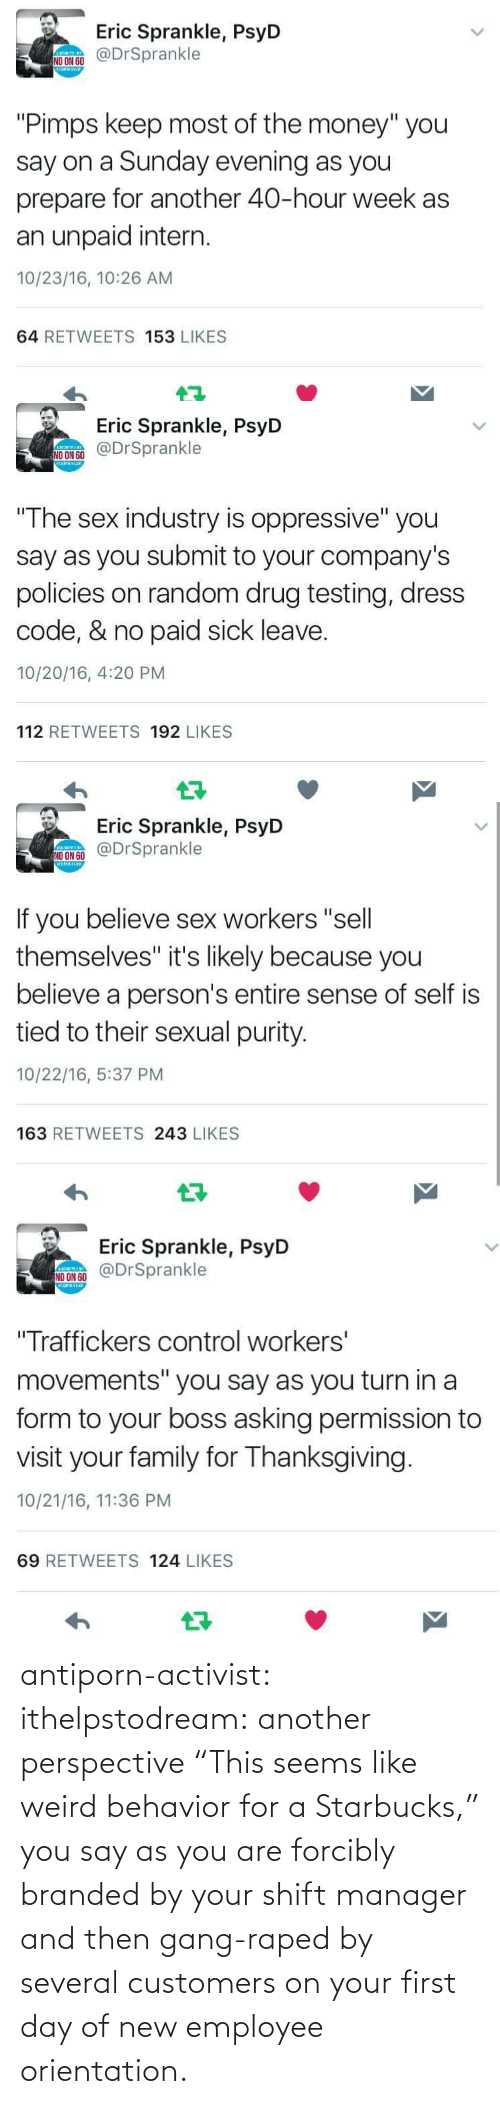 "manager: antiporn-activist:  ithelpstodream: another perspective ""This seems like weird behavior for a Starbucks,"" you say as you are forcibly branded by your shift manager and then gang-raped by several customers on your first day of new employee orientation."